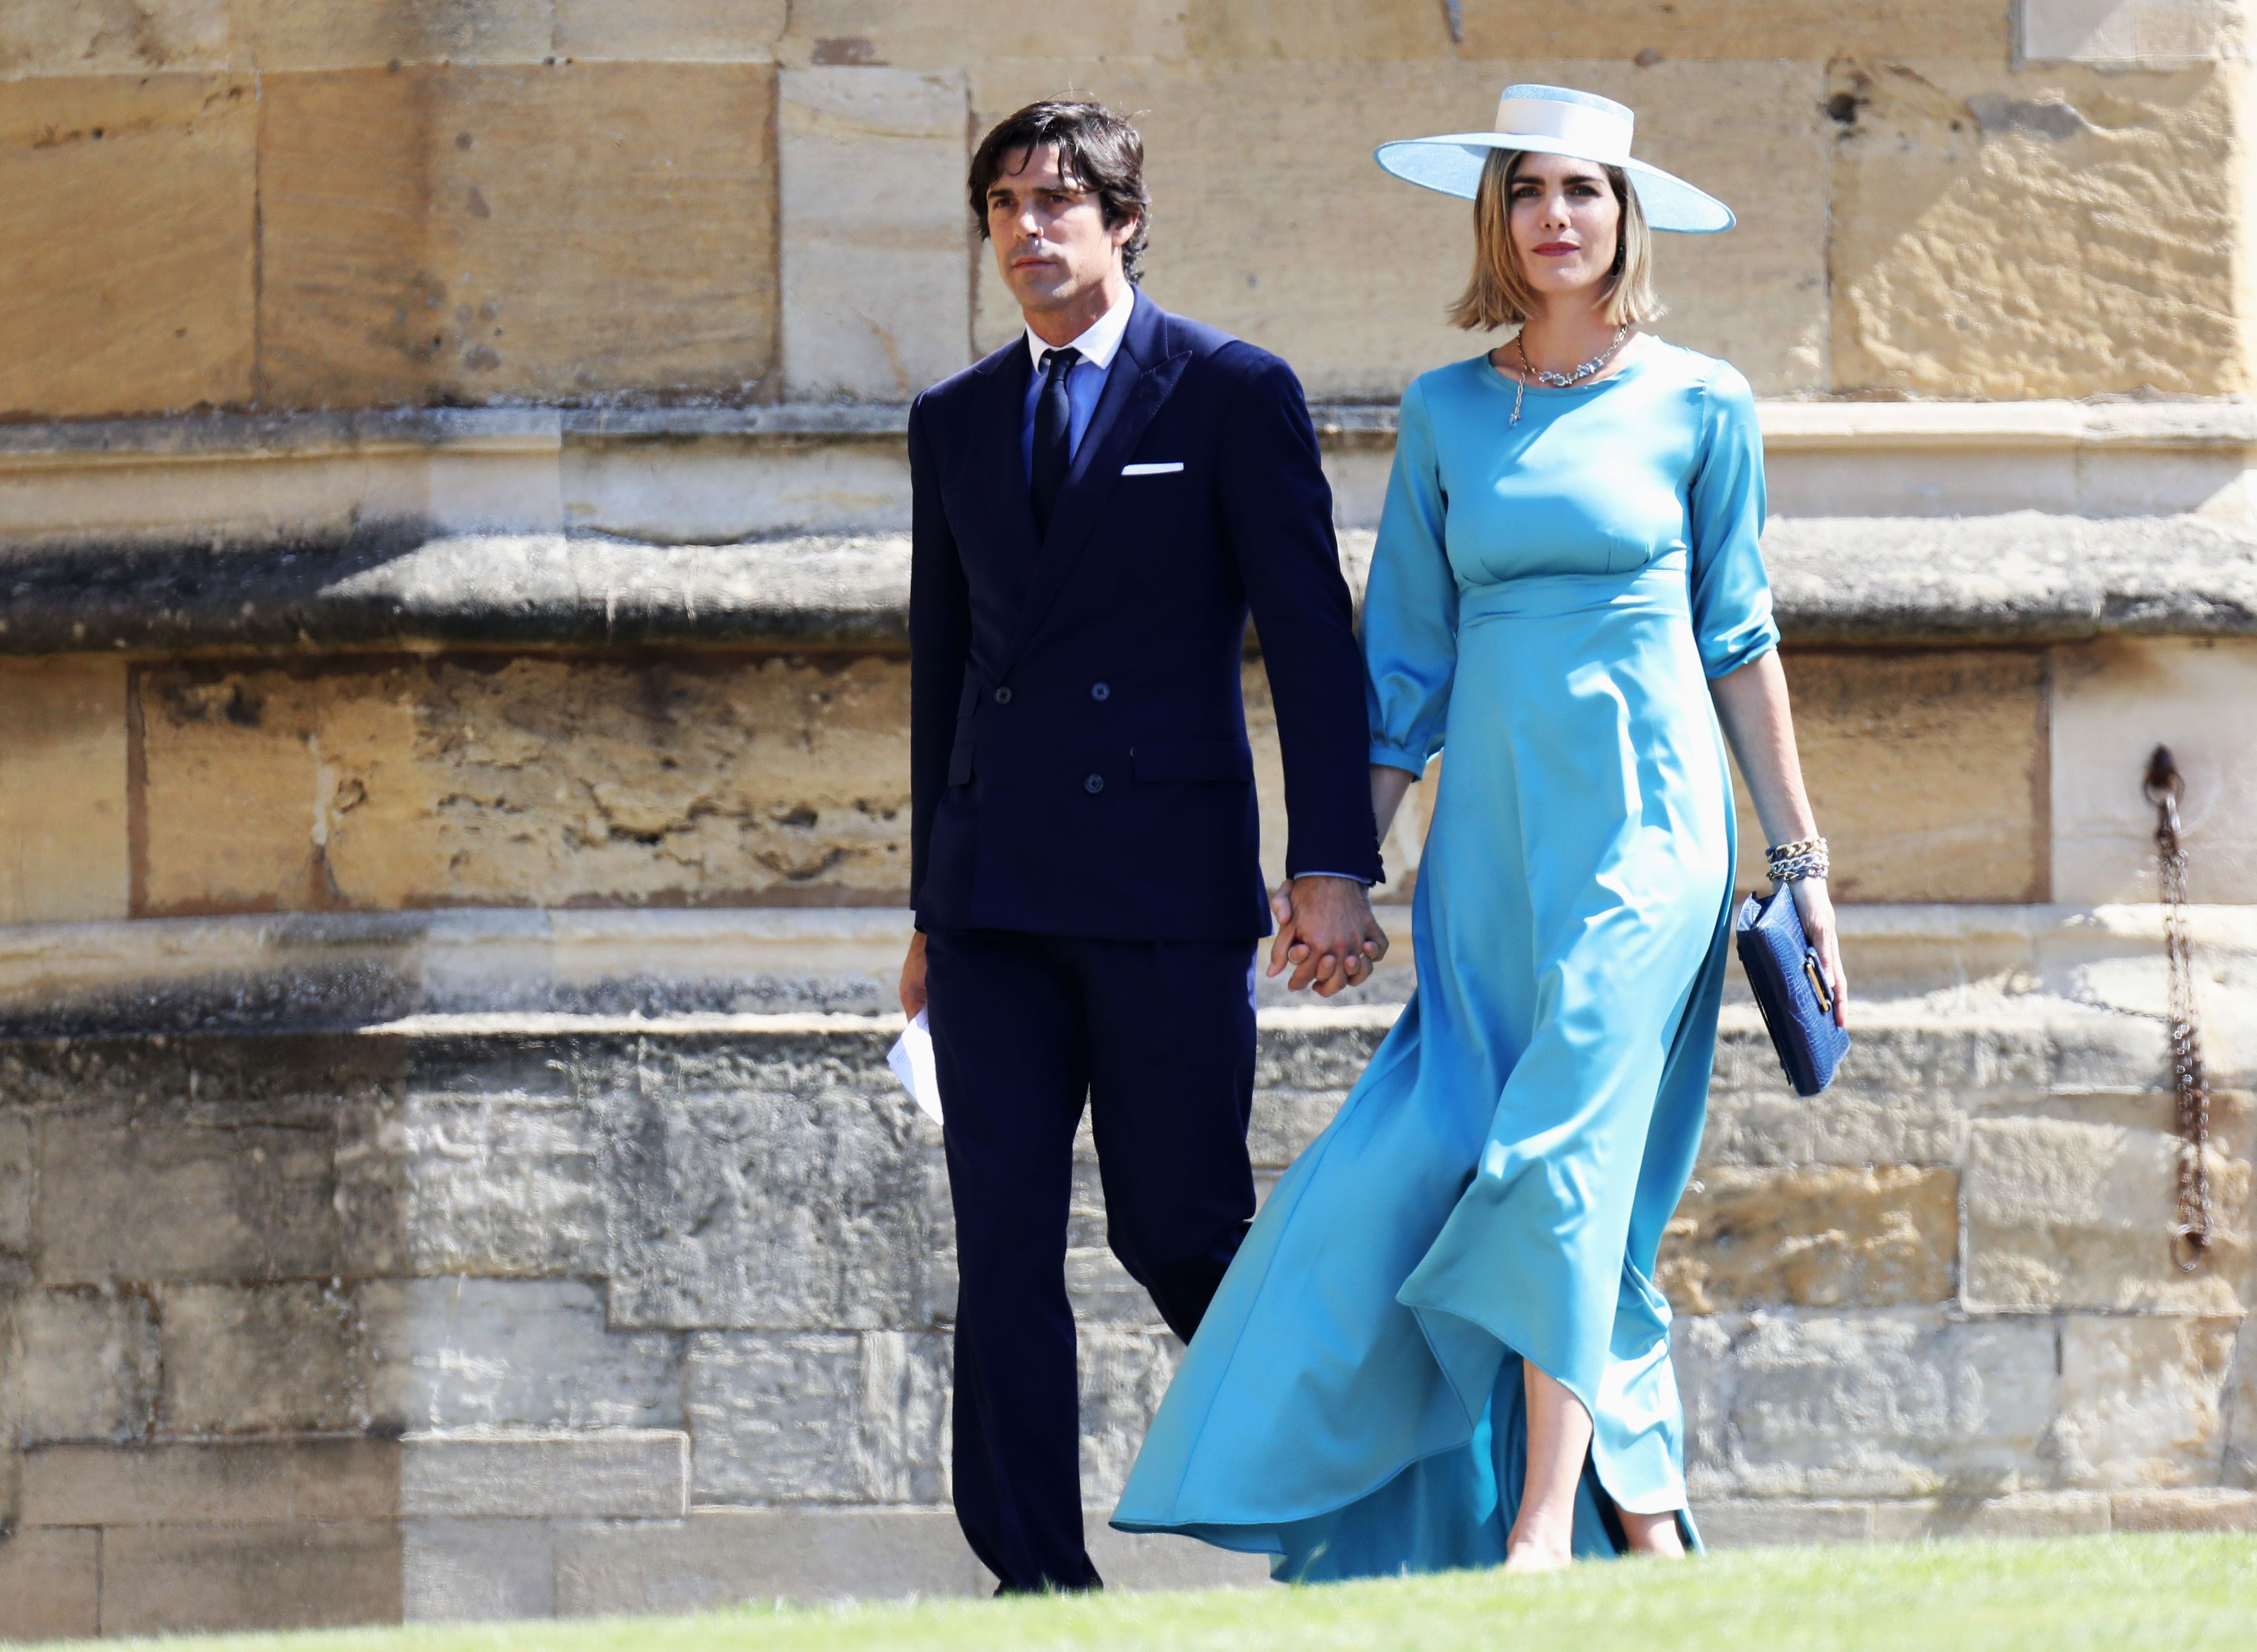 Royal Wedding Best Dressed List - Prince Harry and Meghan Markle ...